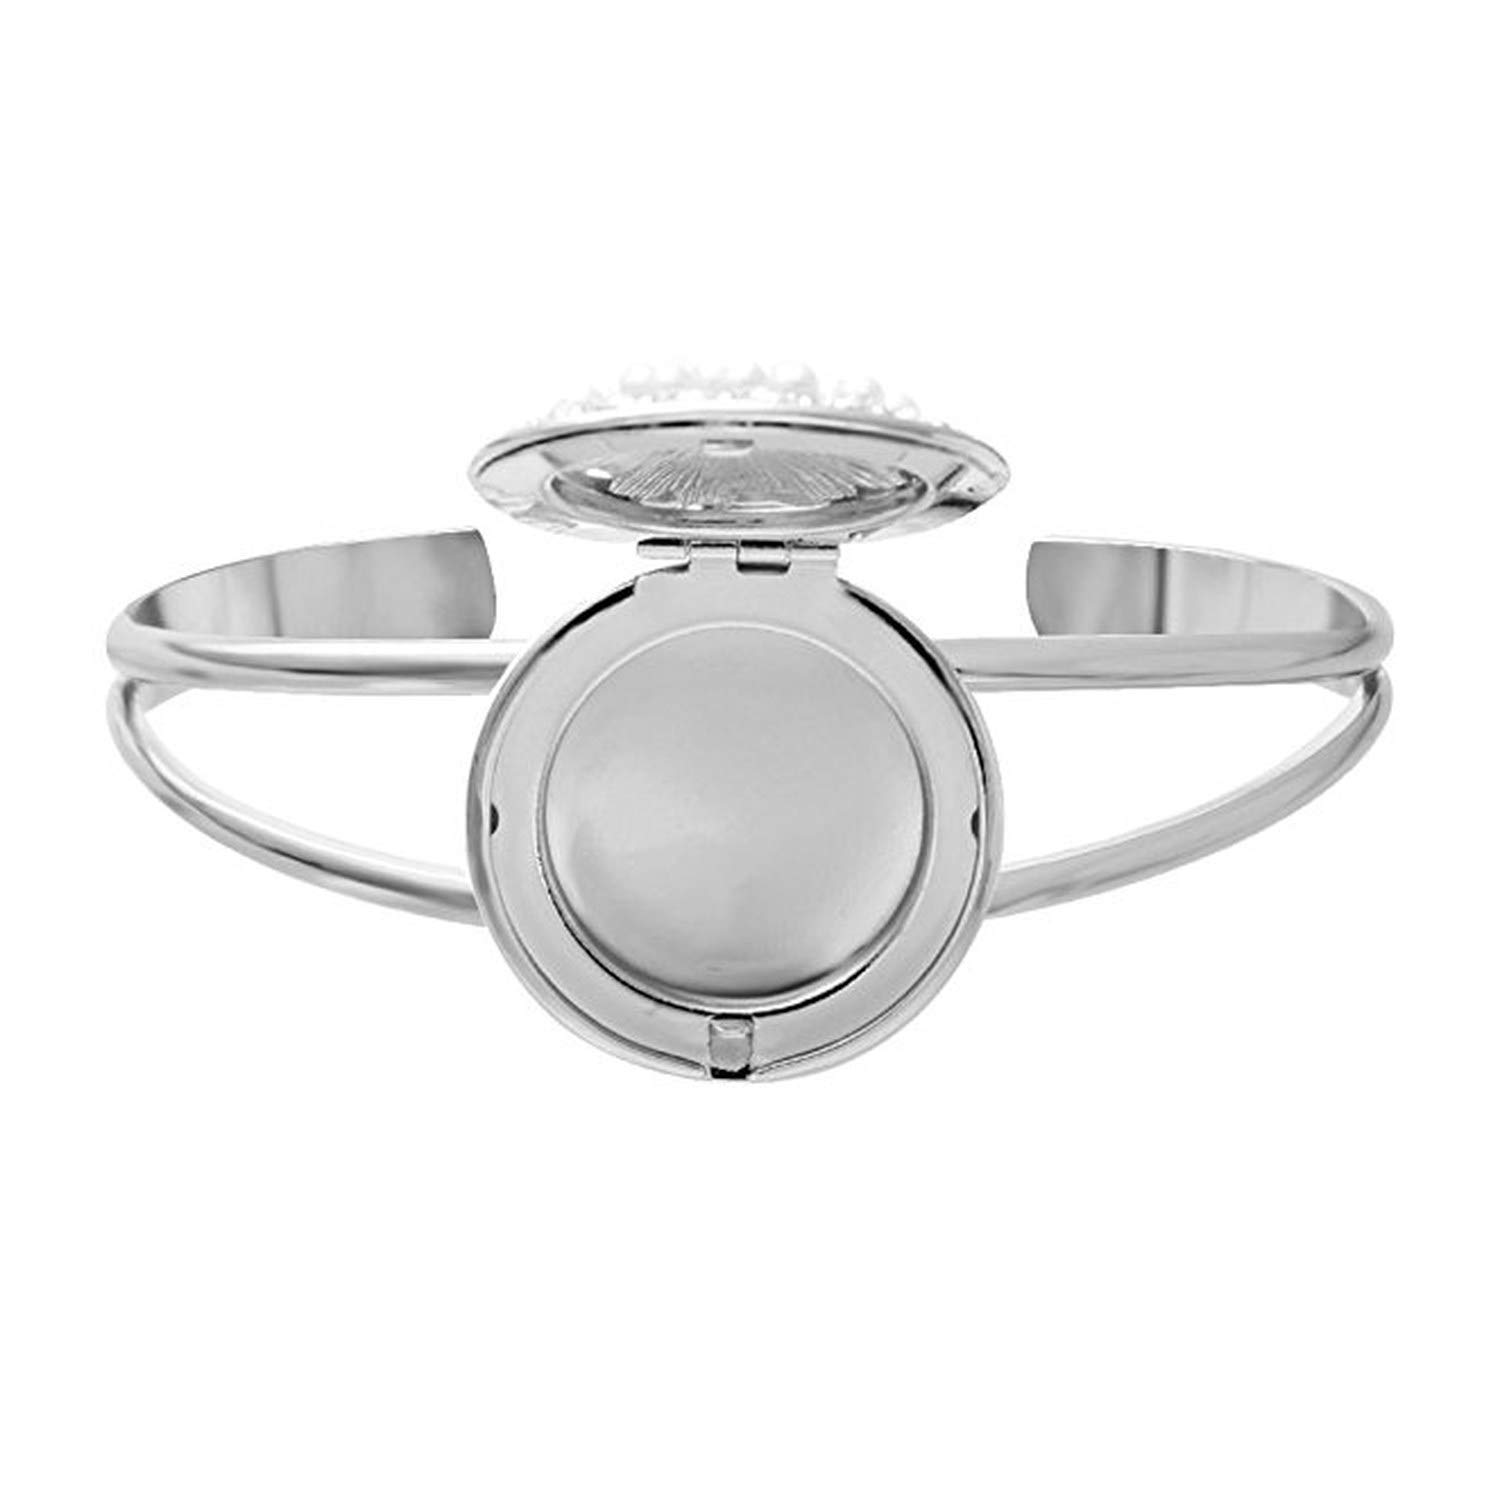 Openable White Crystal Pearl Round Box Locket Bangles Diffuser Cuff Bangle Bracelet